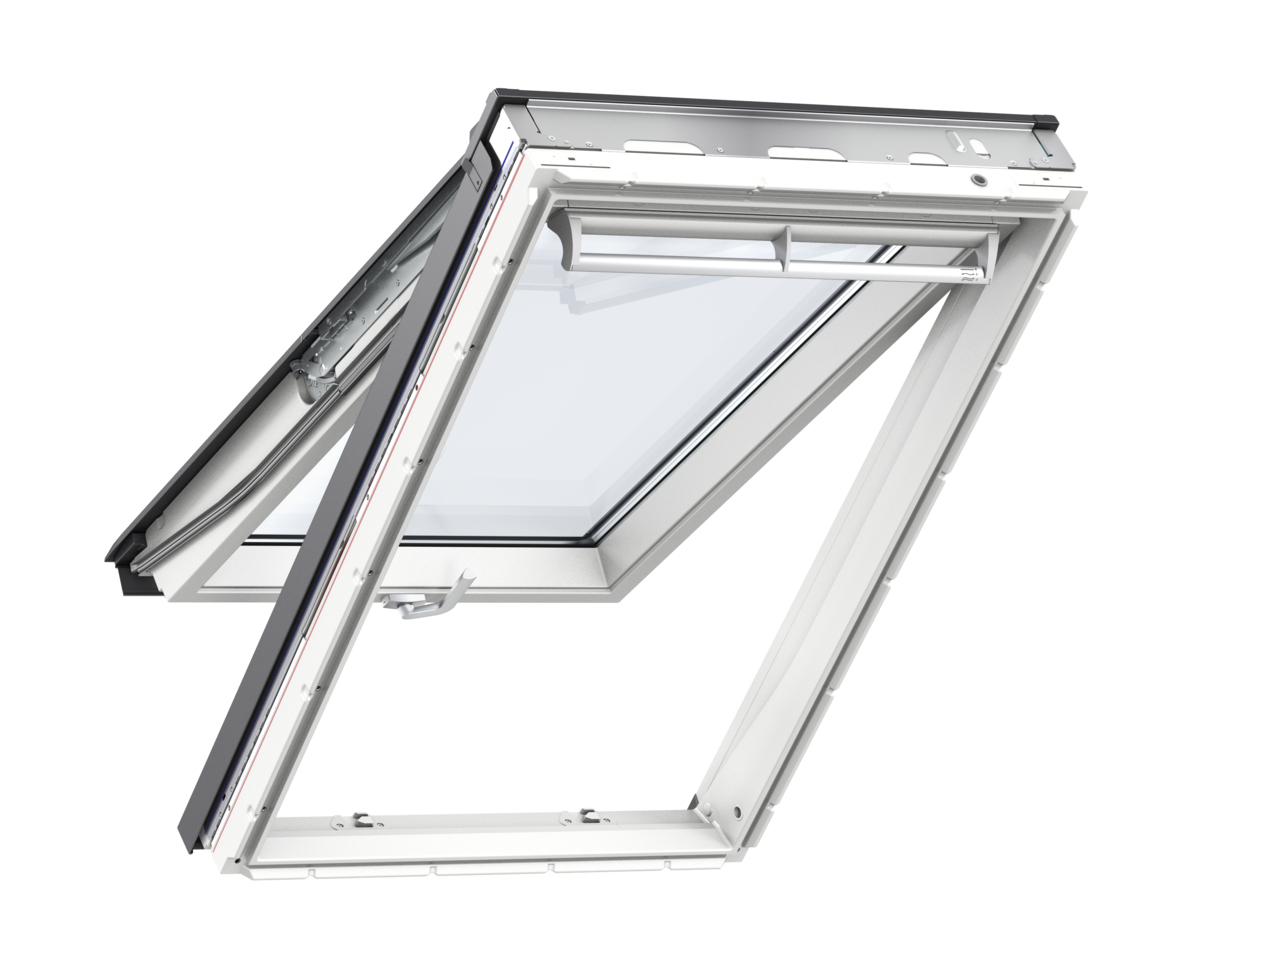 Velux GPU MK06 780 x 1180mm Top Hung 60Pane Roof Window - White Polyurethane